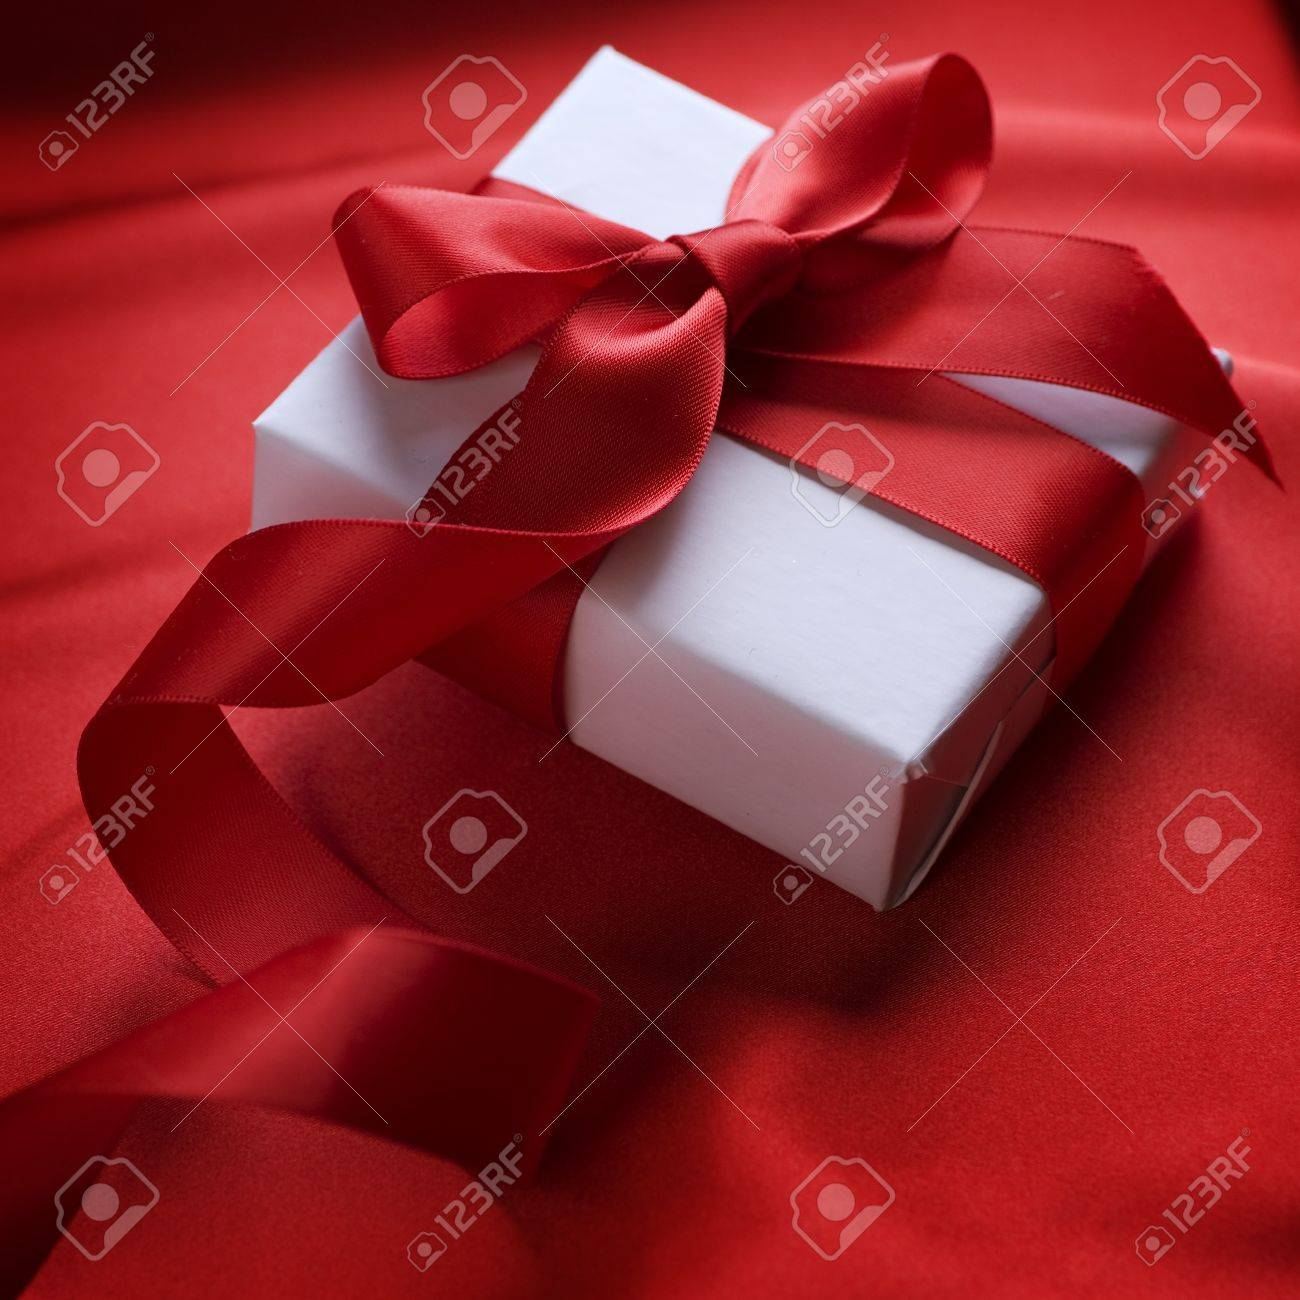 Valentine's Day Gift Stock Photo - 8720876